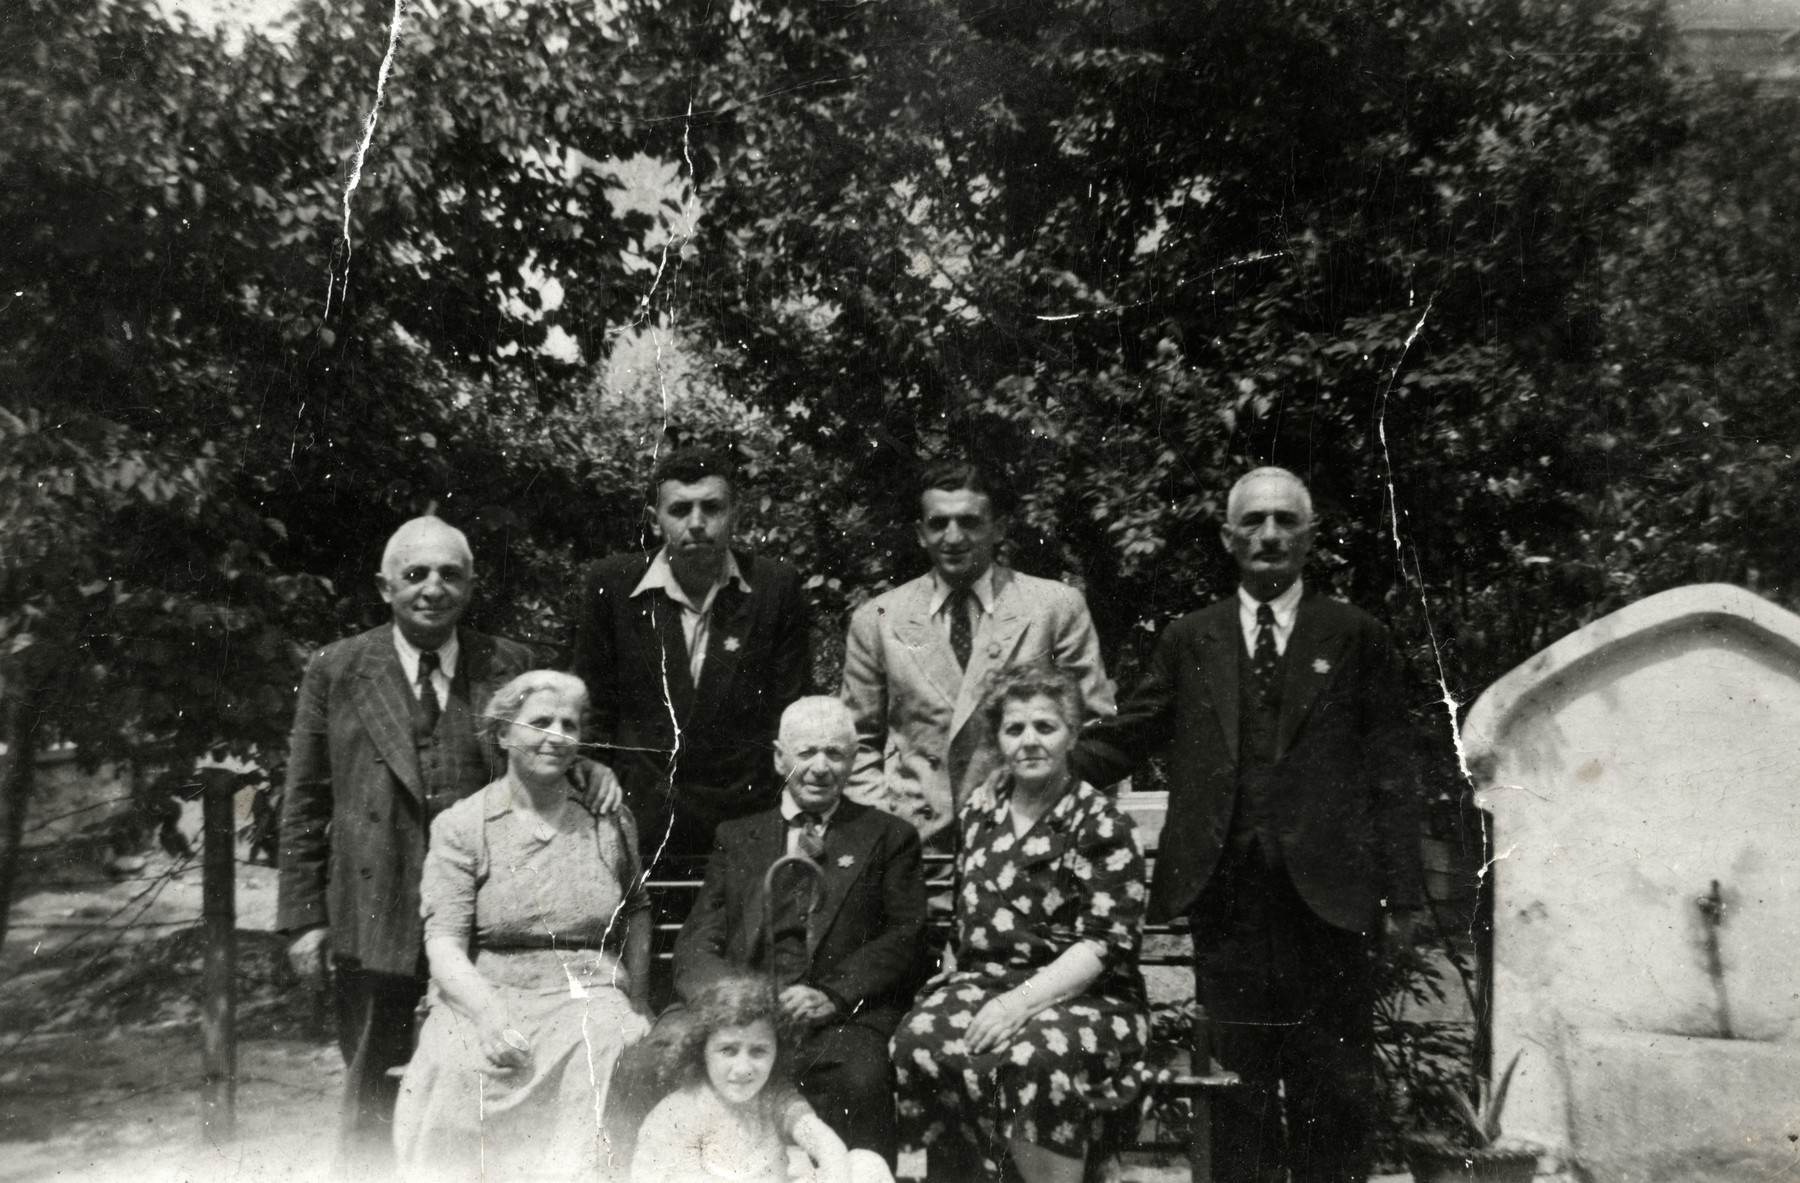 Group portrait of an extended Jewish family in Plovdiv wearing Jewish stars.  Pictured in the center is the donor's grandfather surrounded by her mother's two sisters, their husbands and other family members.